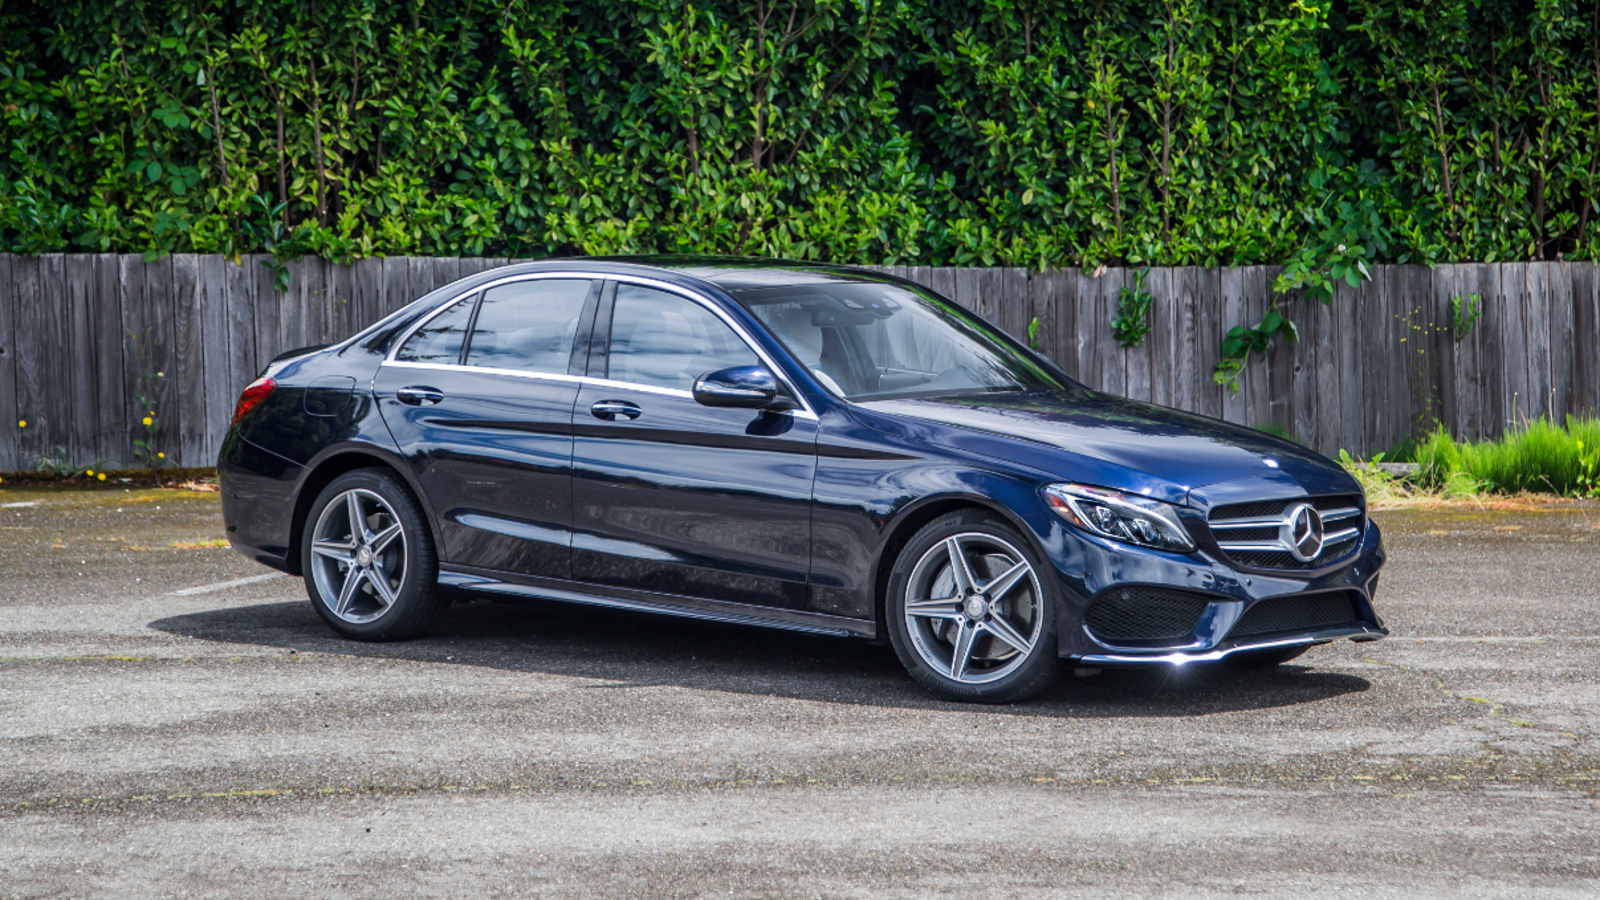 Mercedes C-Class: The Ultimate Buyer's Guide